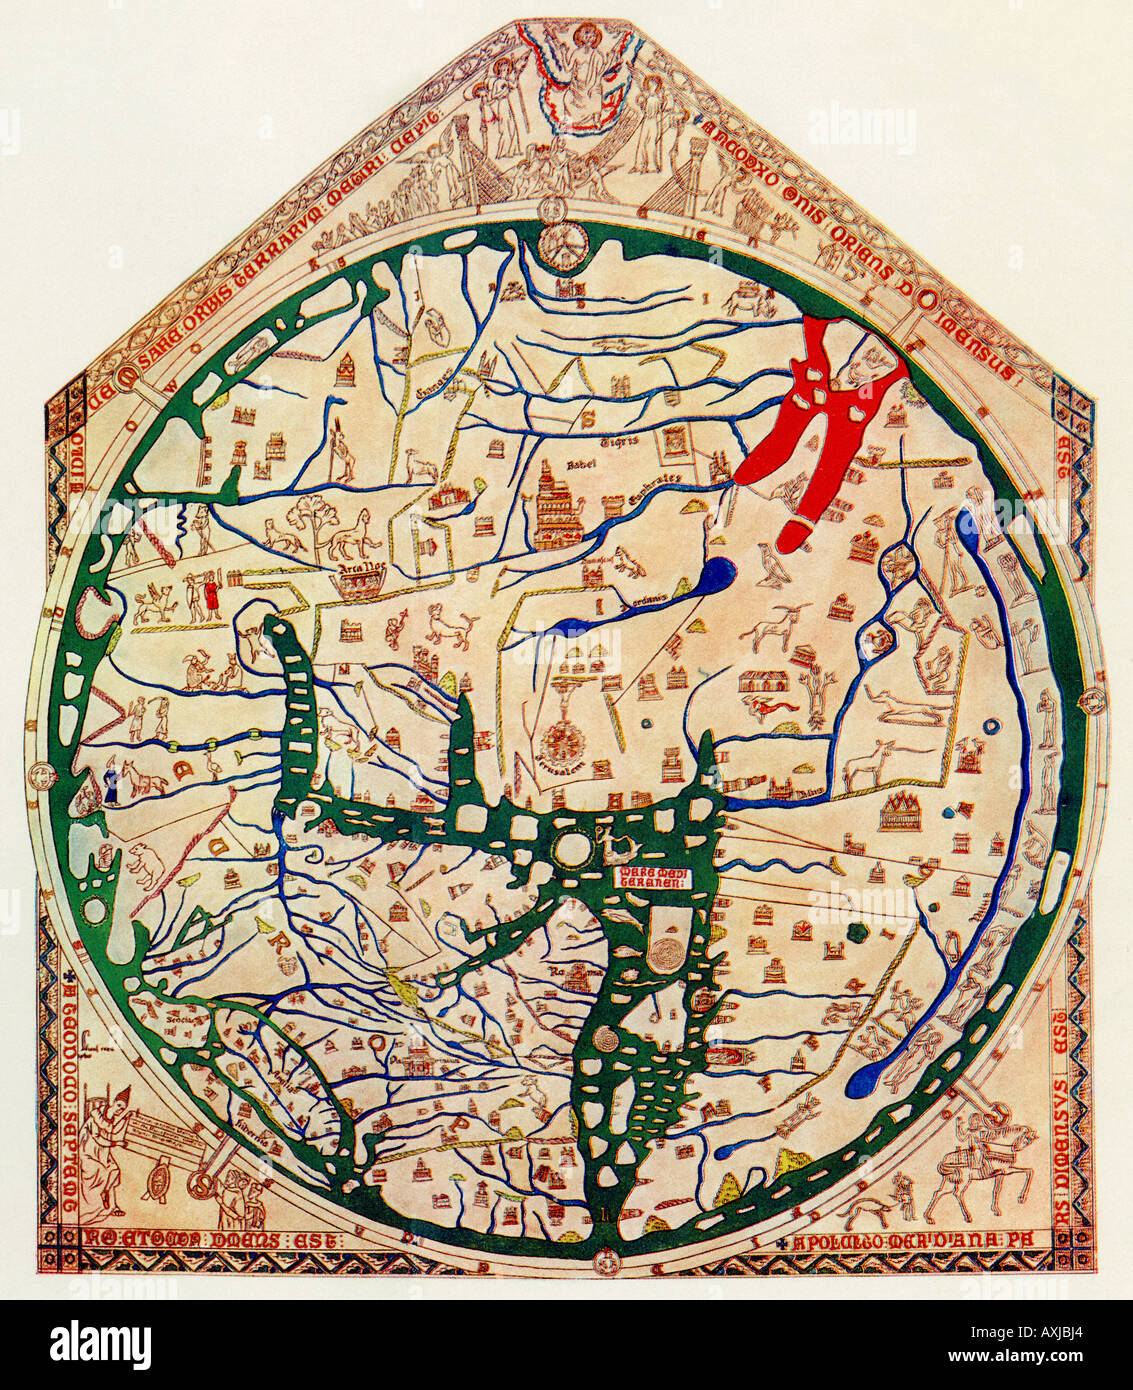 Hereford mappa mundi of 1280 showing jerusalem at the center hereford mappa mundi of 1280 showing jerusalem at the center europe is lower left africa is lower right gumiabroncs Images